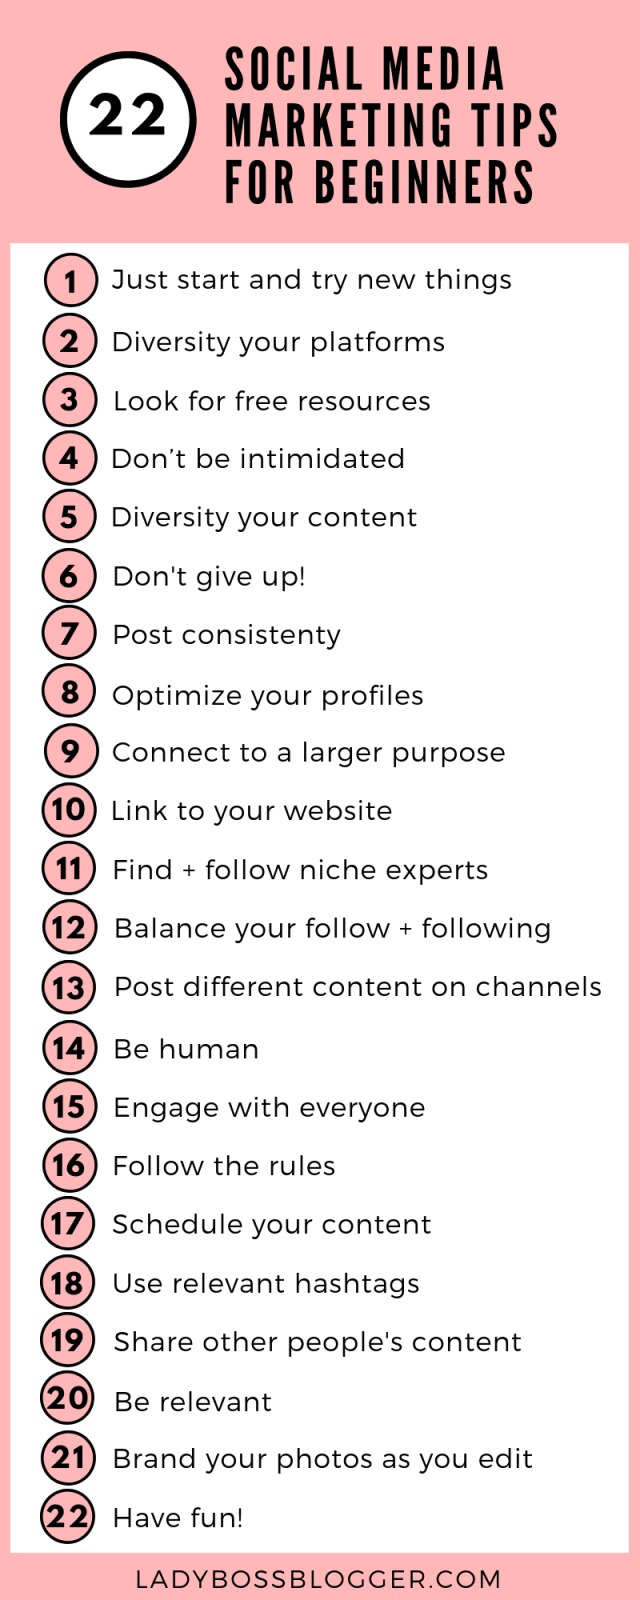 22 Social Media Marketing Tips For Beginners